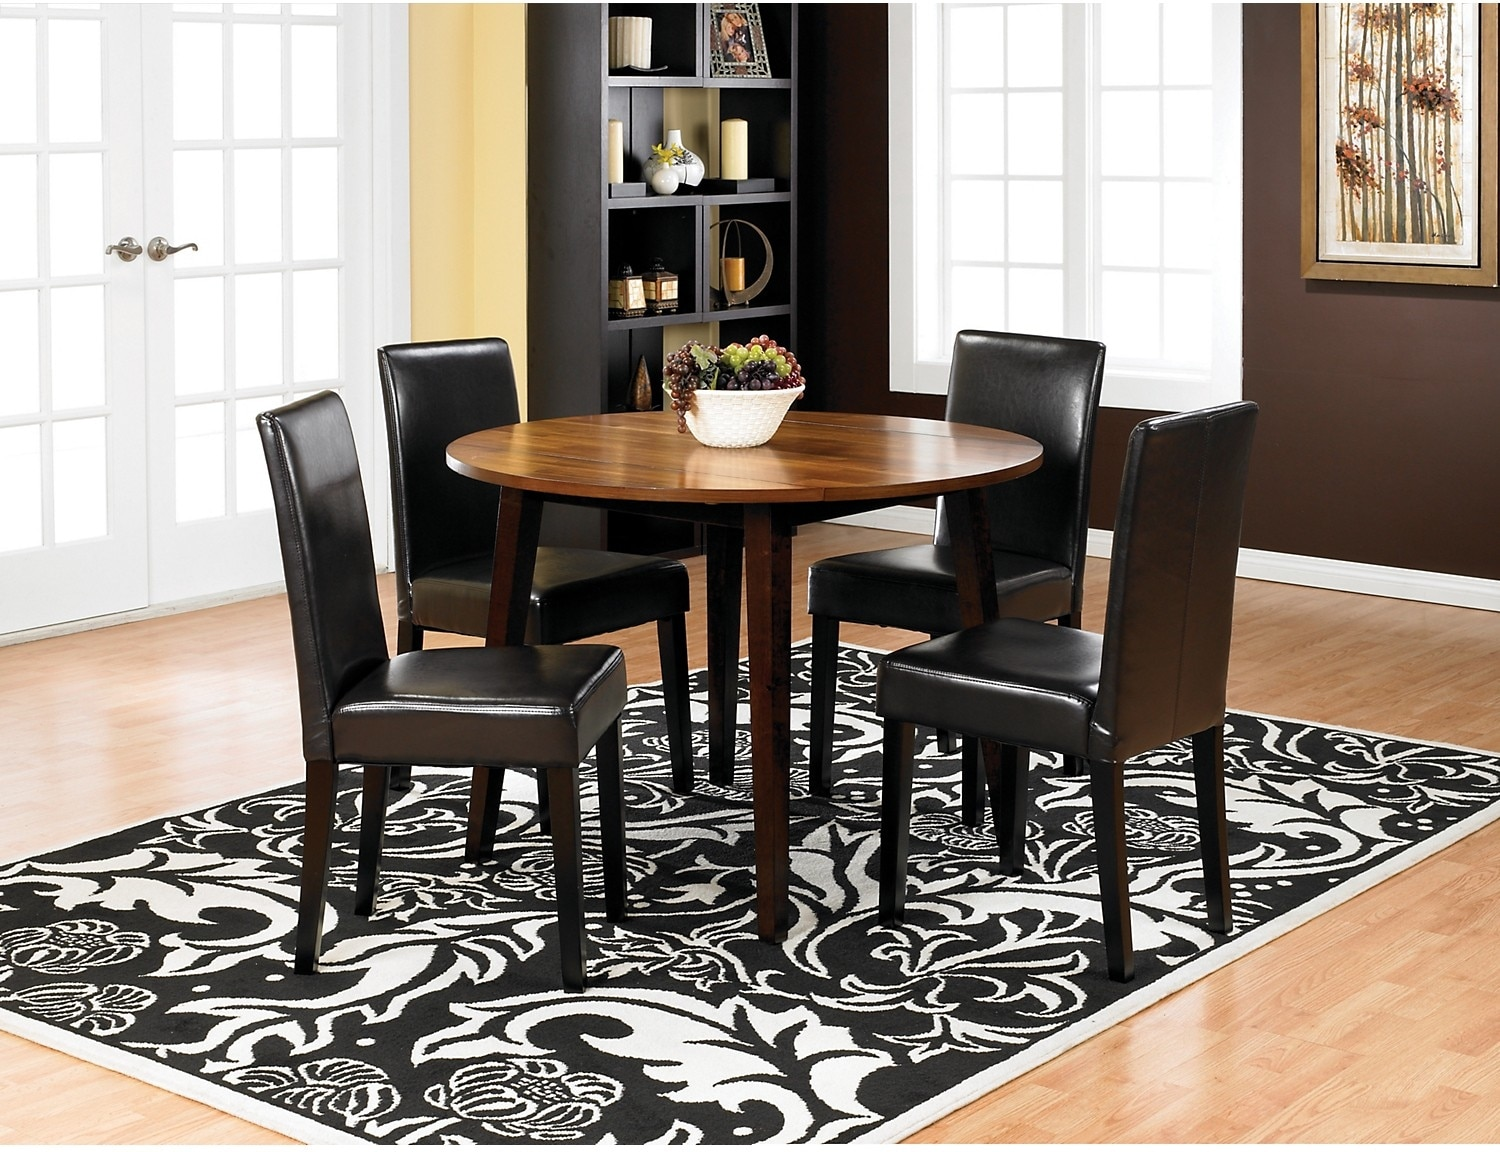 Dining Room Furniture - Zara 5-Piece Dining Package with Brown Chairs